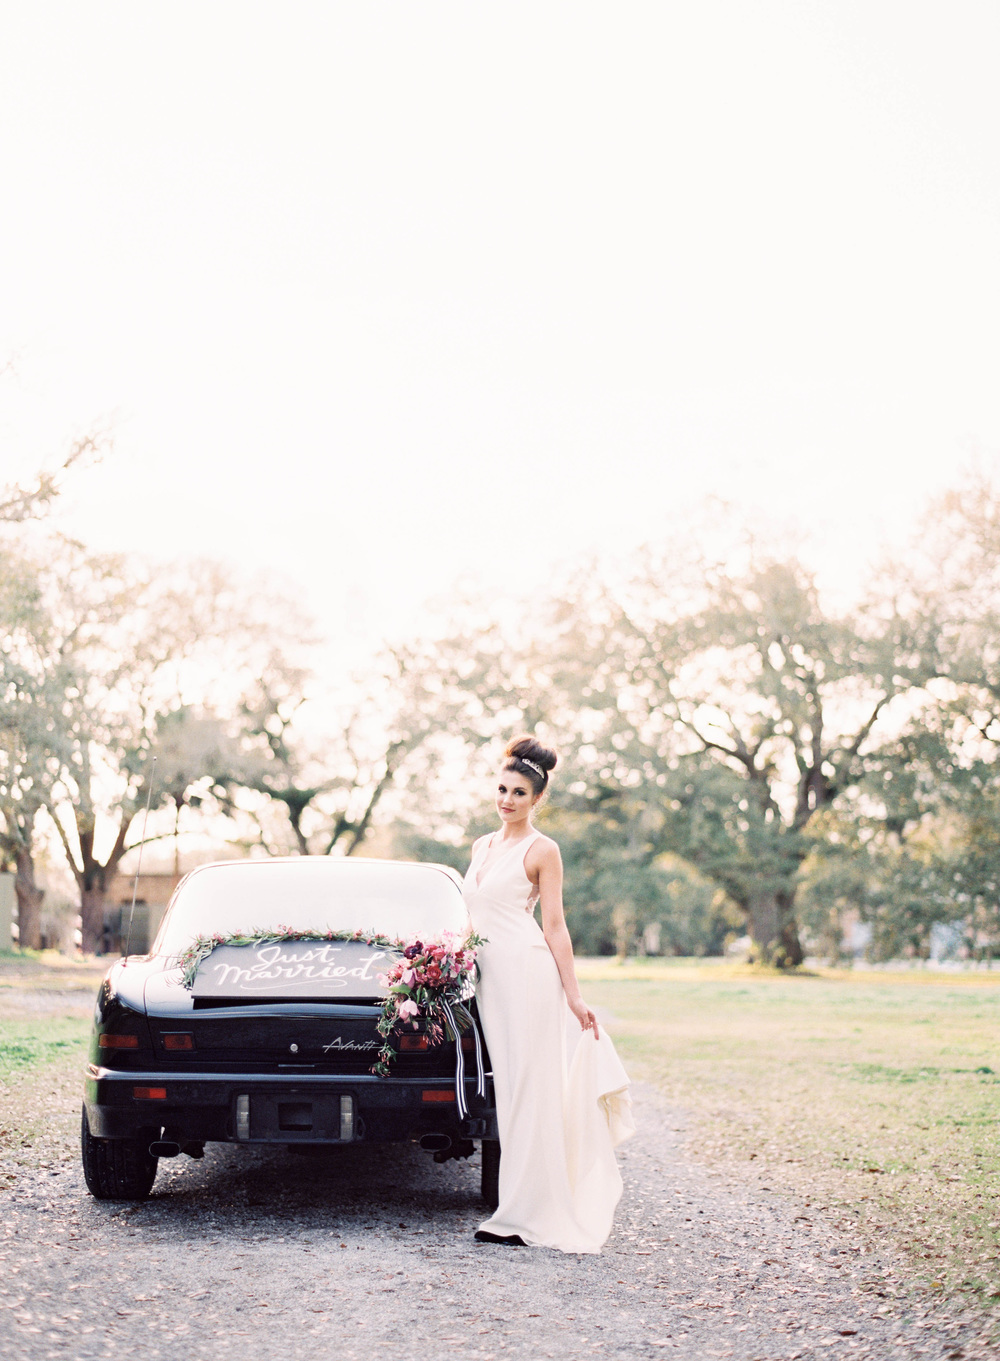 sapphireevents.com | Sapphire Events New Orleans Wedding Planning and Design | Pantone Wedding Ideas | Marissa Lambert Photography | Melrose Mansion Weddings